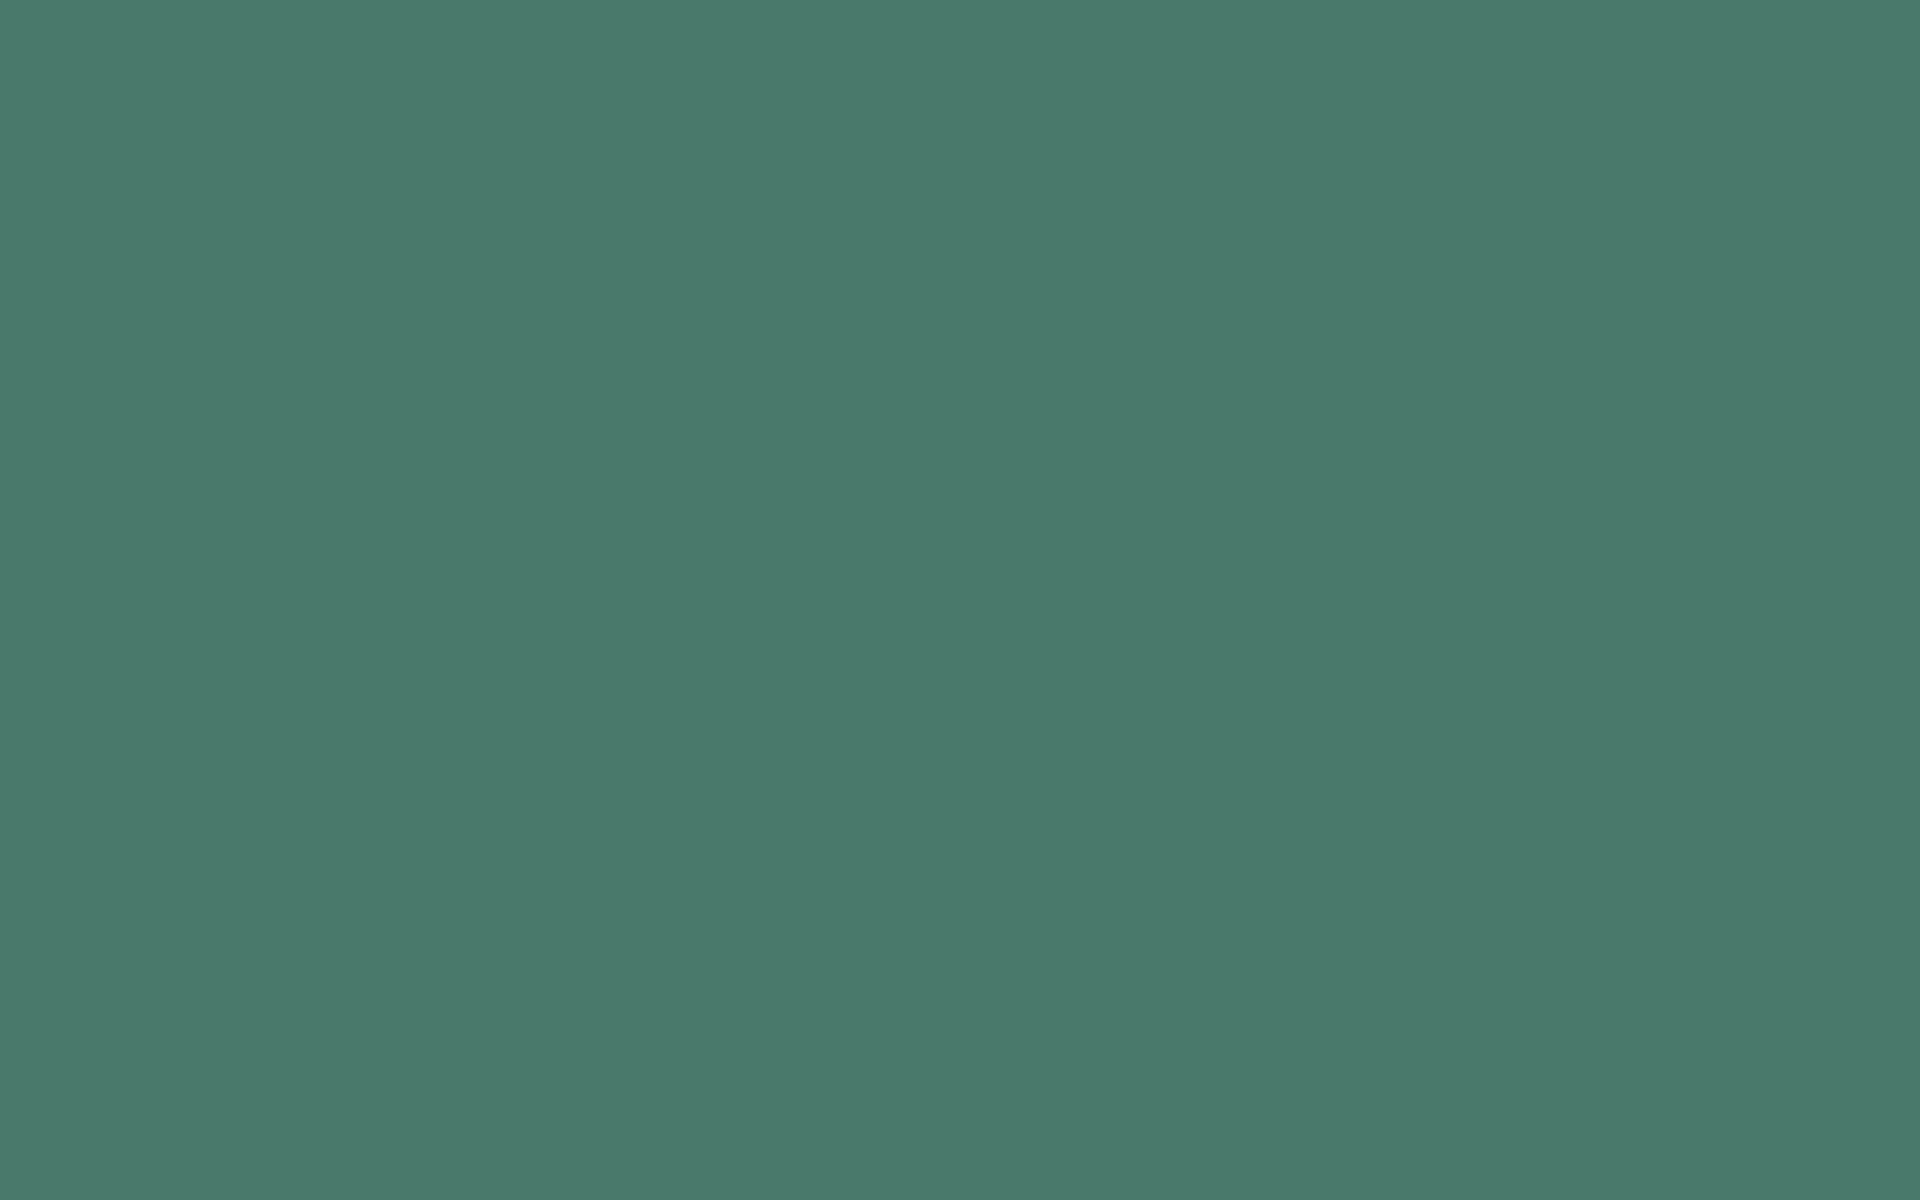 1920x1200 Hookers Green Solid Color Background